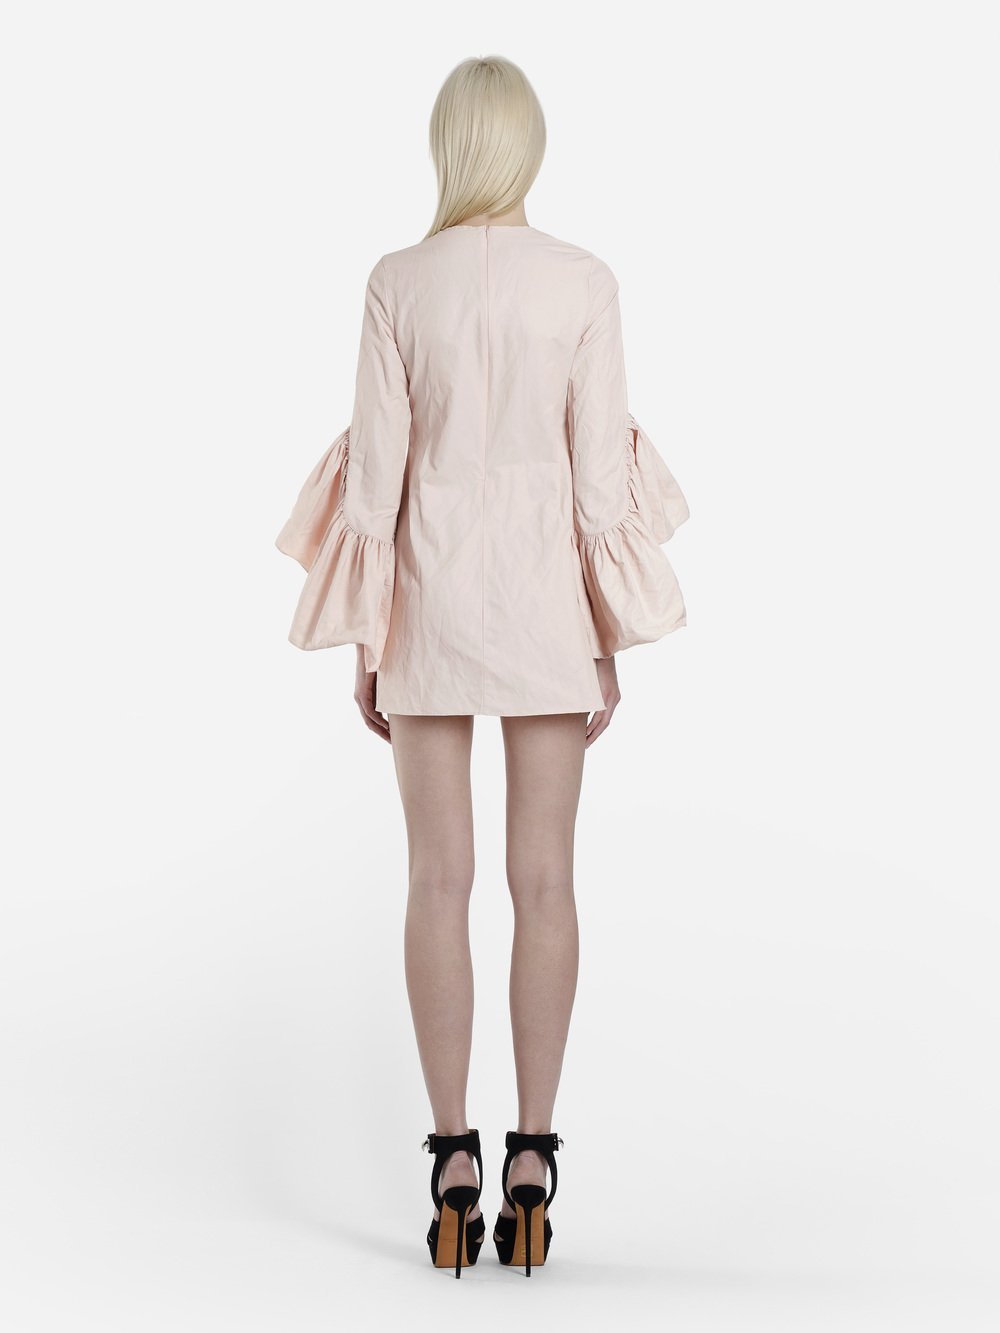 Ss18dr0042tft pale pink 18 01 17 5526